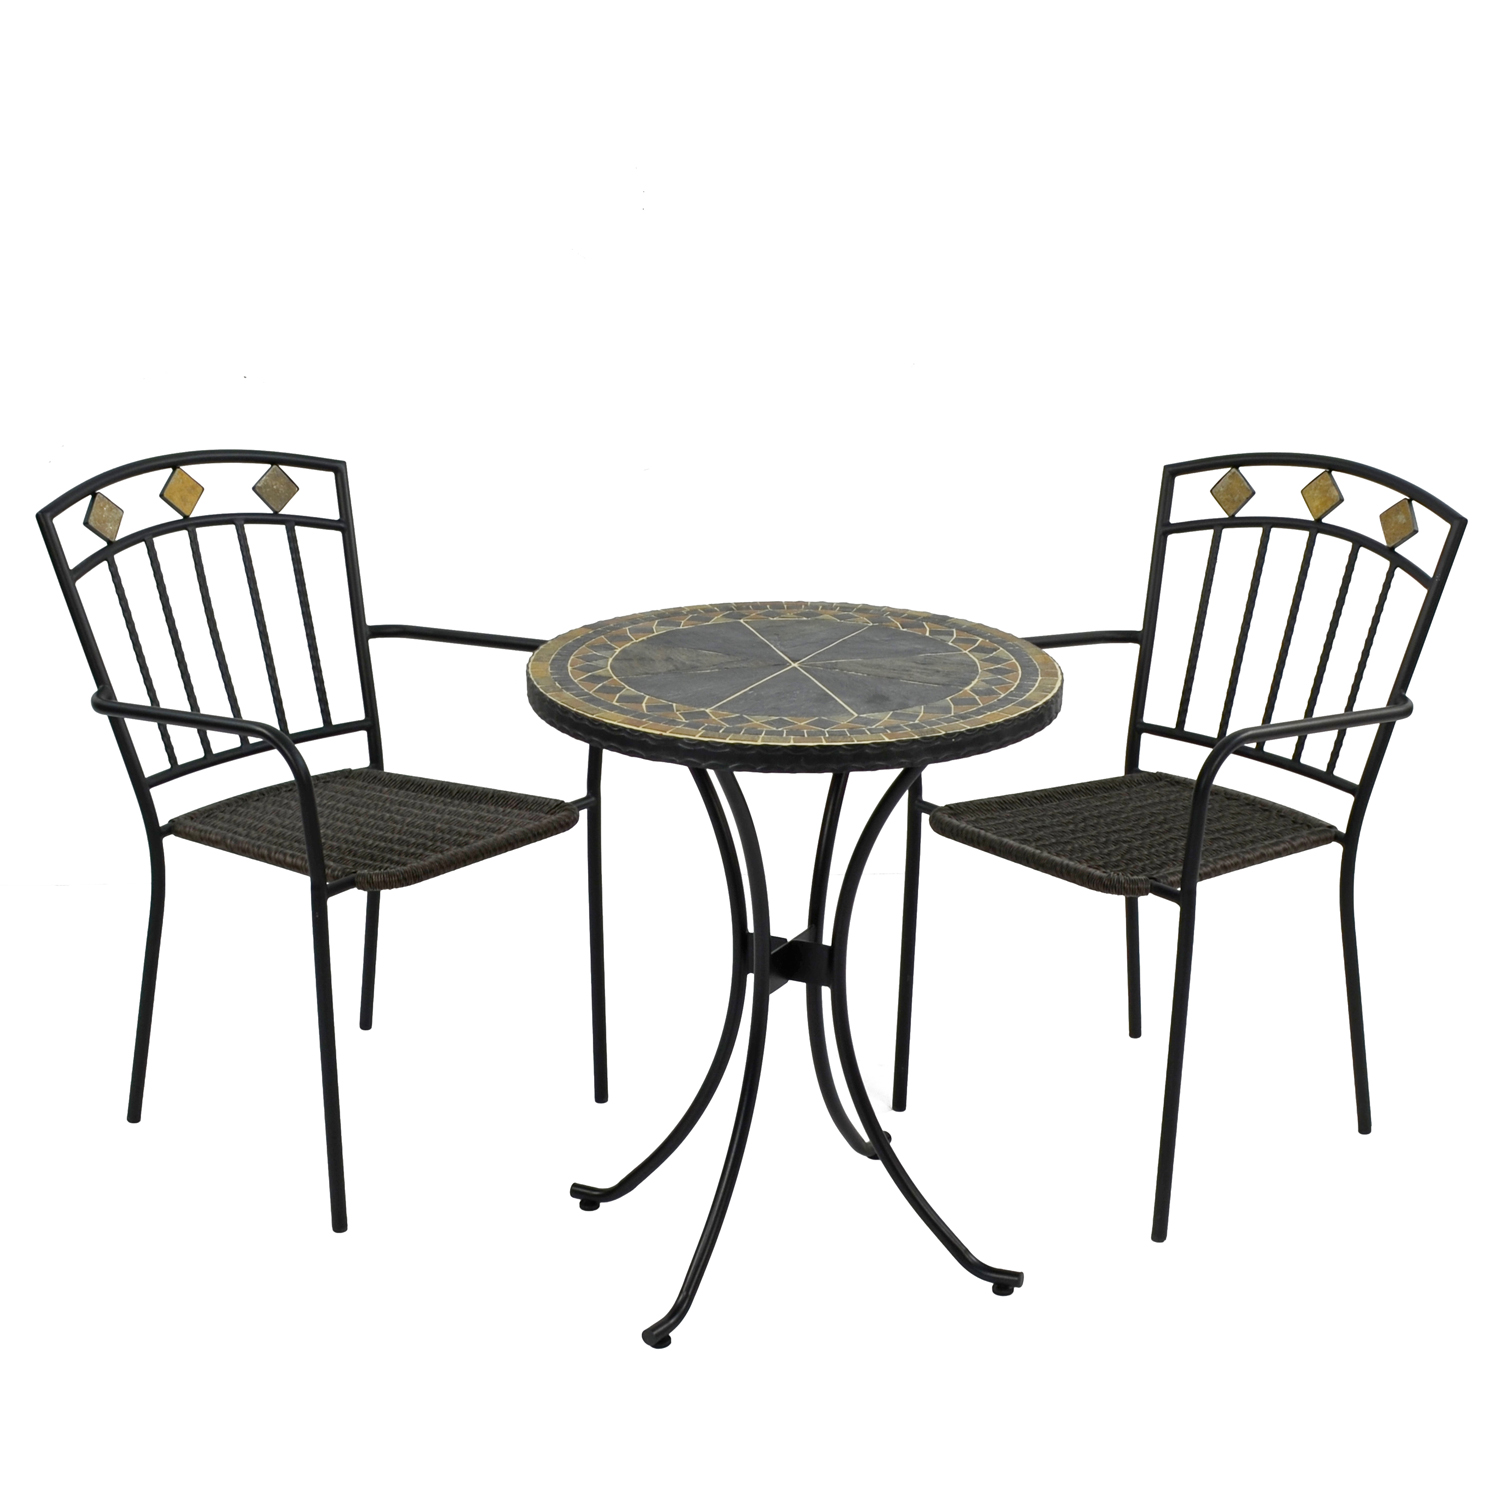 CLERMONT 60CM BISTRO WITH 2 MALAGA CHAIR SET